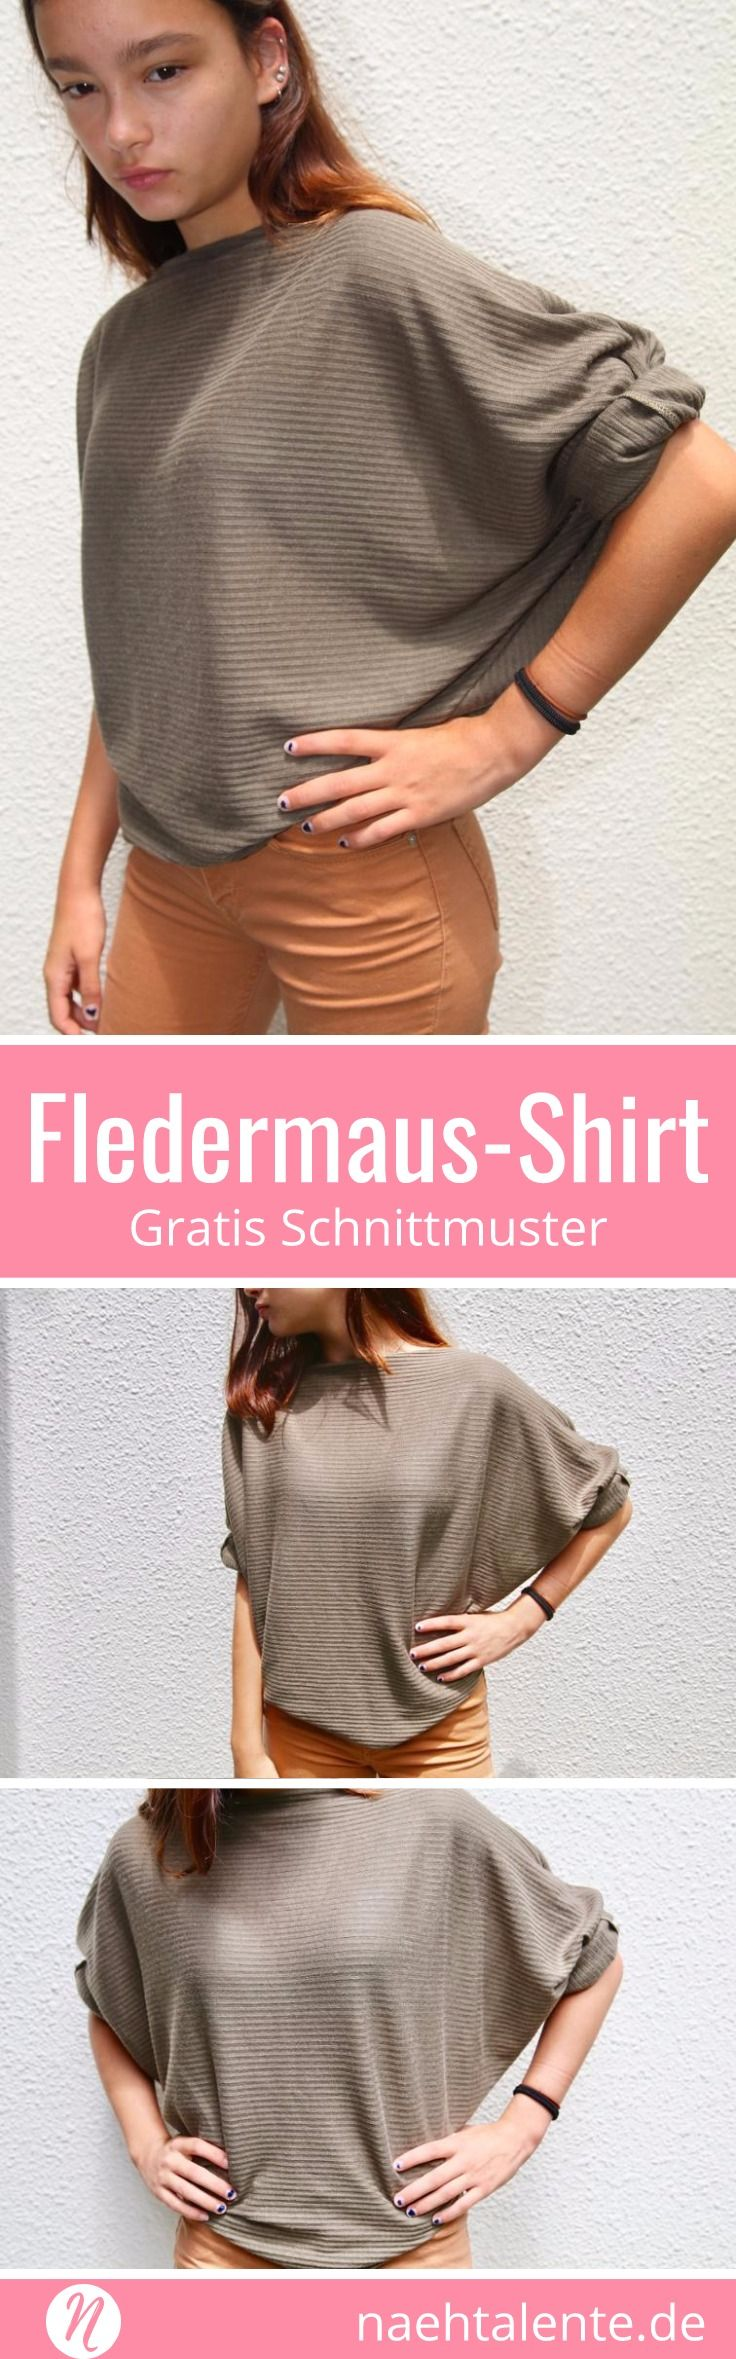 Gratis Schnittmuster: Fledermaus-Shirt mit langen Ärmel und U-Boot-Ausschnitt ❤ PDF Schnittmuster zum Ausdrucken ❤ Gr. S - 3XL ✂ Nähtalente.de - Magazin für kostenlose Schnittmuster und Hobbyschneider/innen ✂ Free sewing pattern for an easy kimono shirt with bootneck. PDF pattern for print at home ❤ Size S - 3 XL ✂ Nähtalente.de - Magazin for sewing and free sewing patterns ✂ #nähen #freebook #schnittmuster #gratis #nähenmachtglücklich #freesewingpattern #handmade #diy